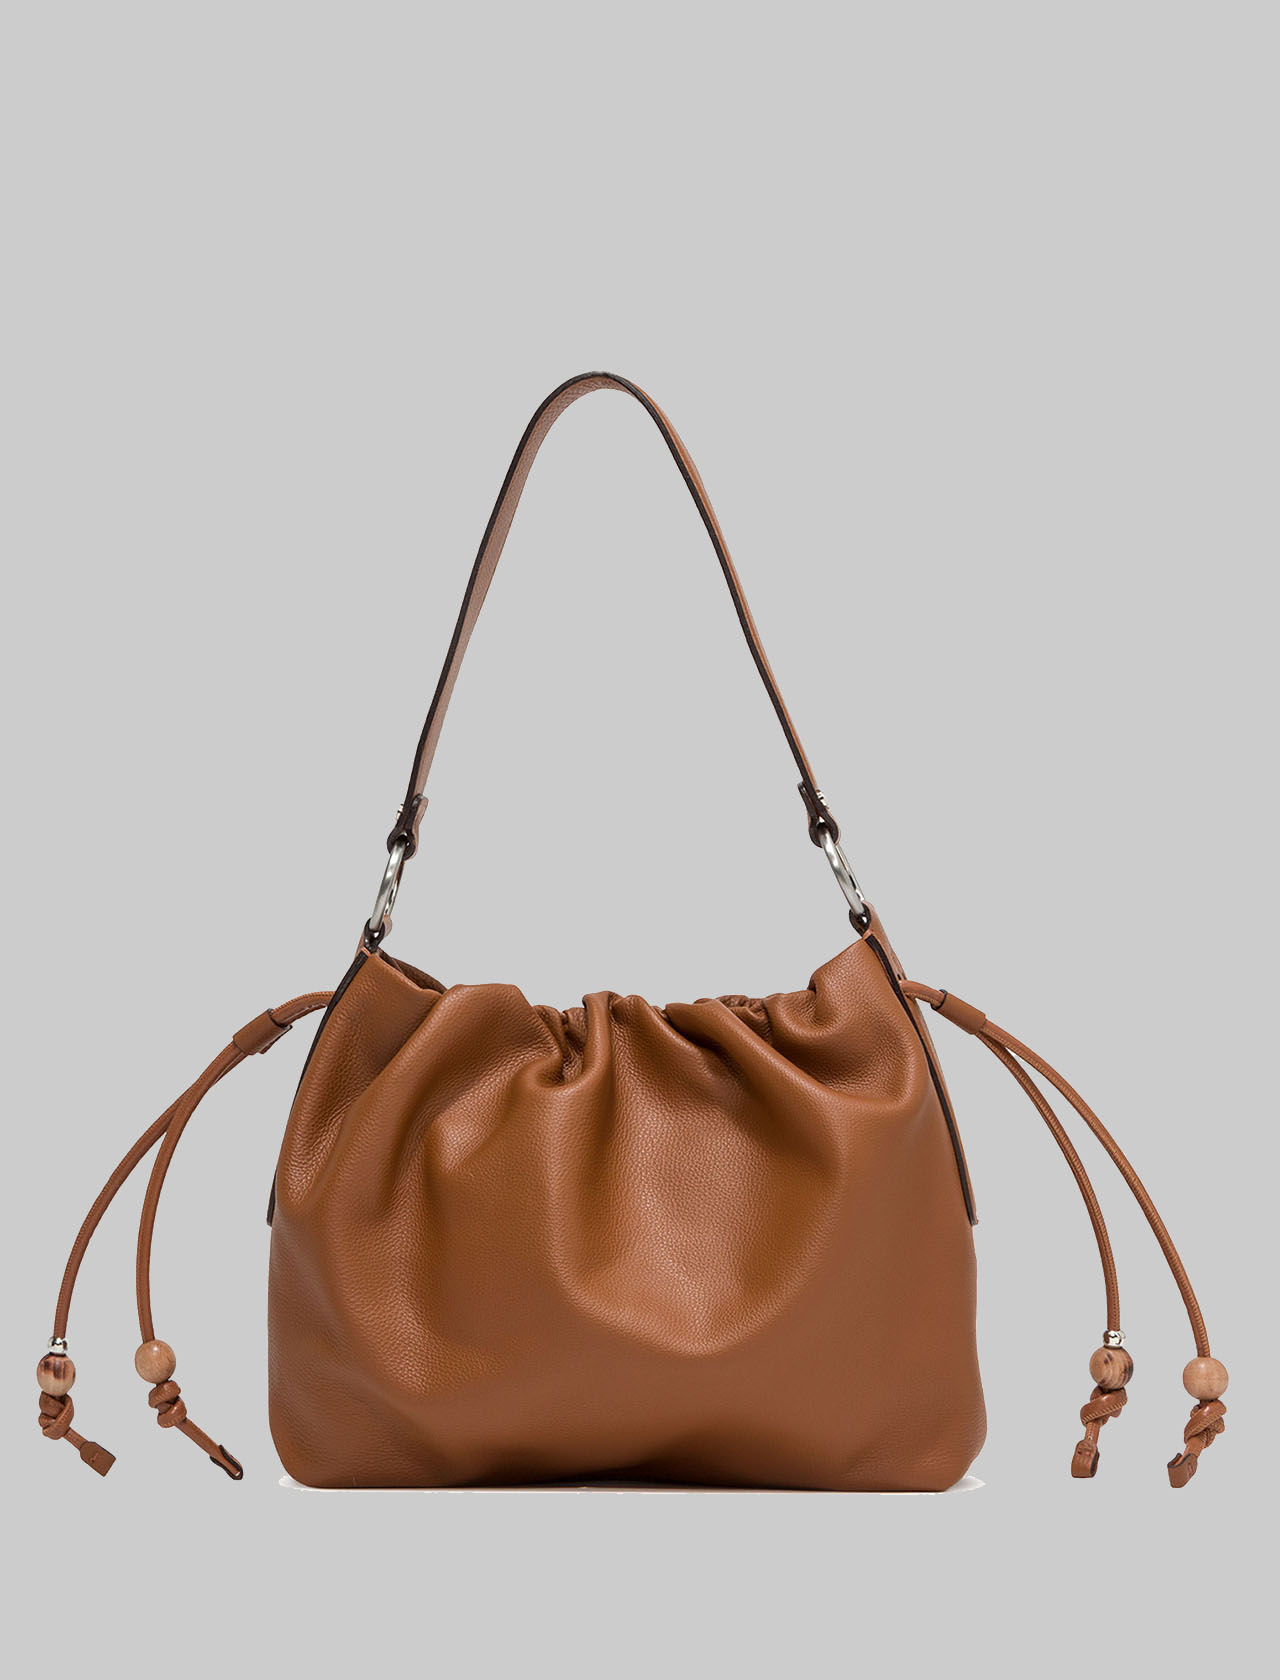 Woman's Peonia Shoulder Bag In Tan Leather With Laces And Leather Shoulder Strap Gianni Chiarini | Bags and backpacks | BS8420206